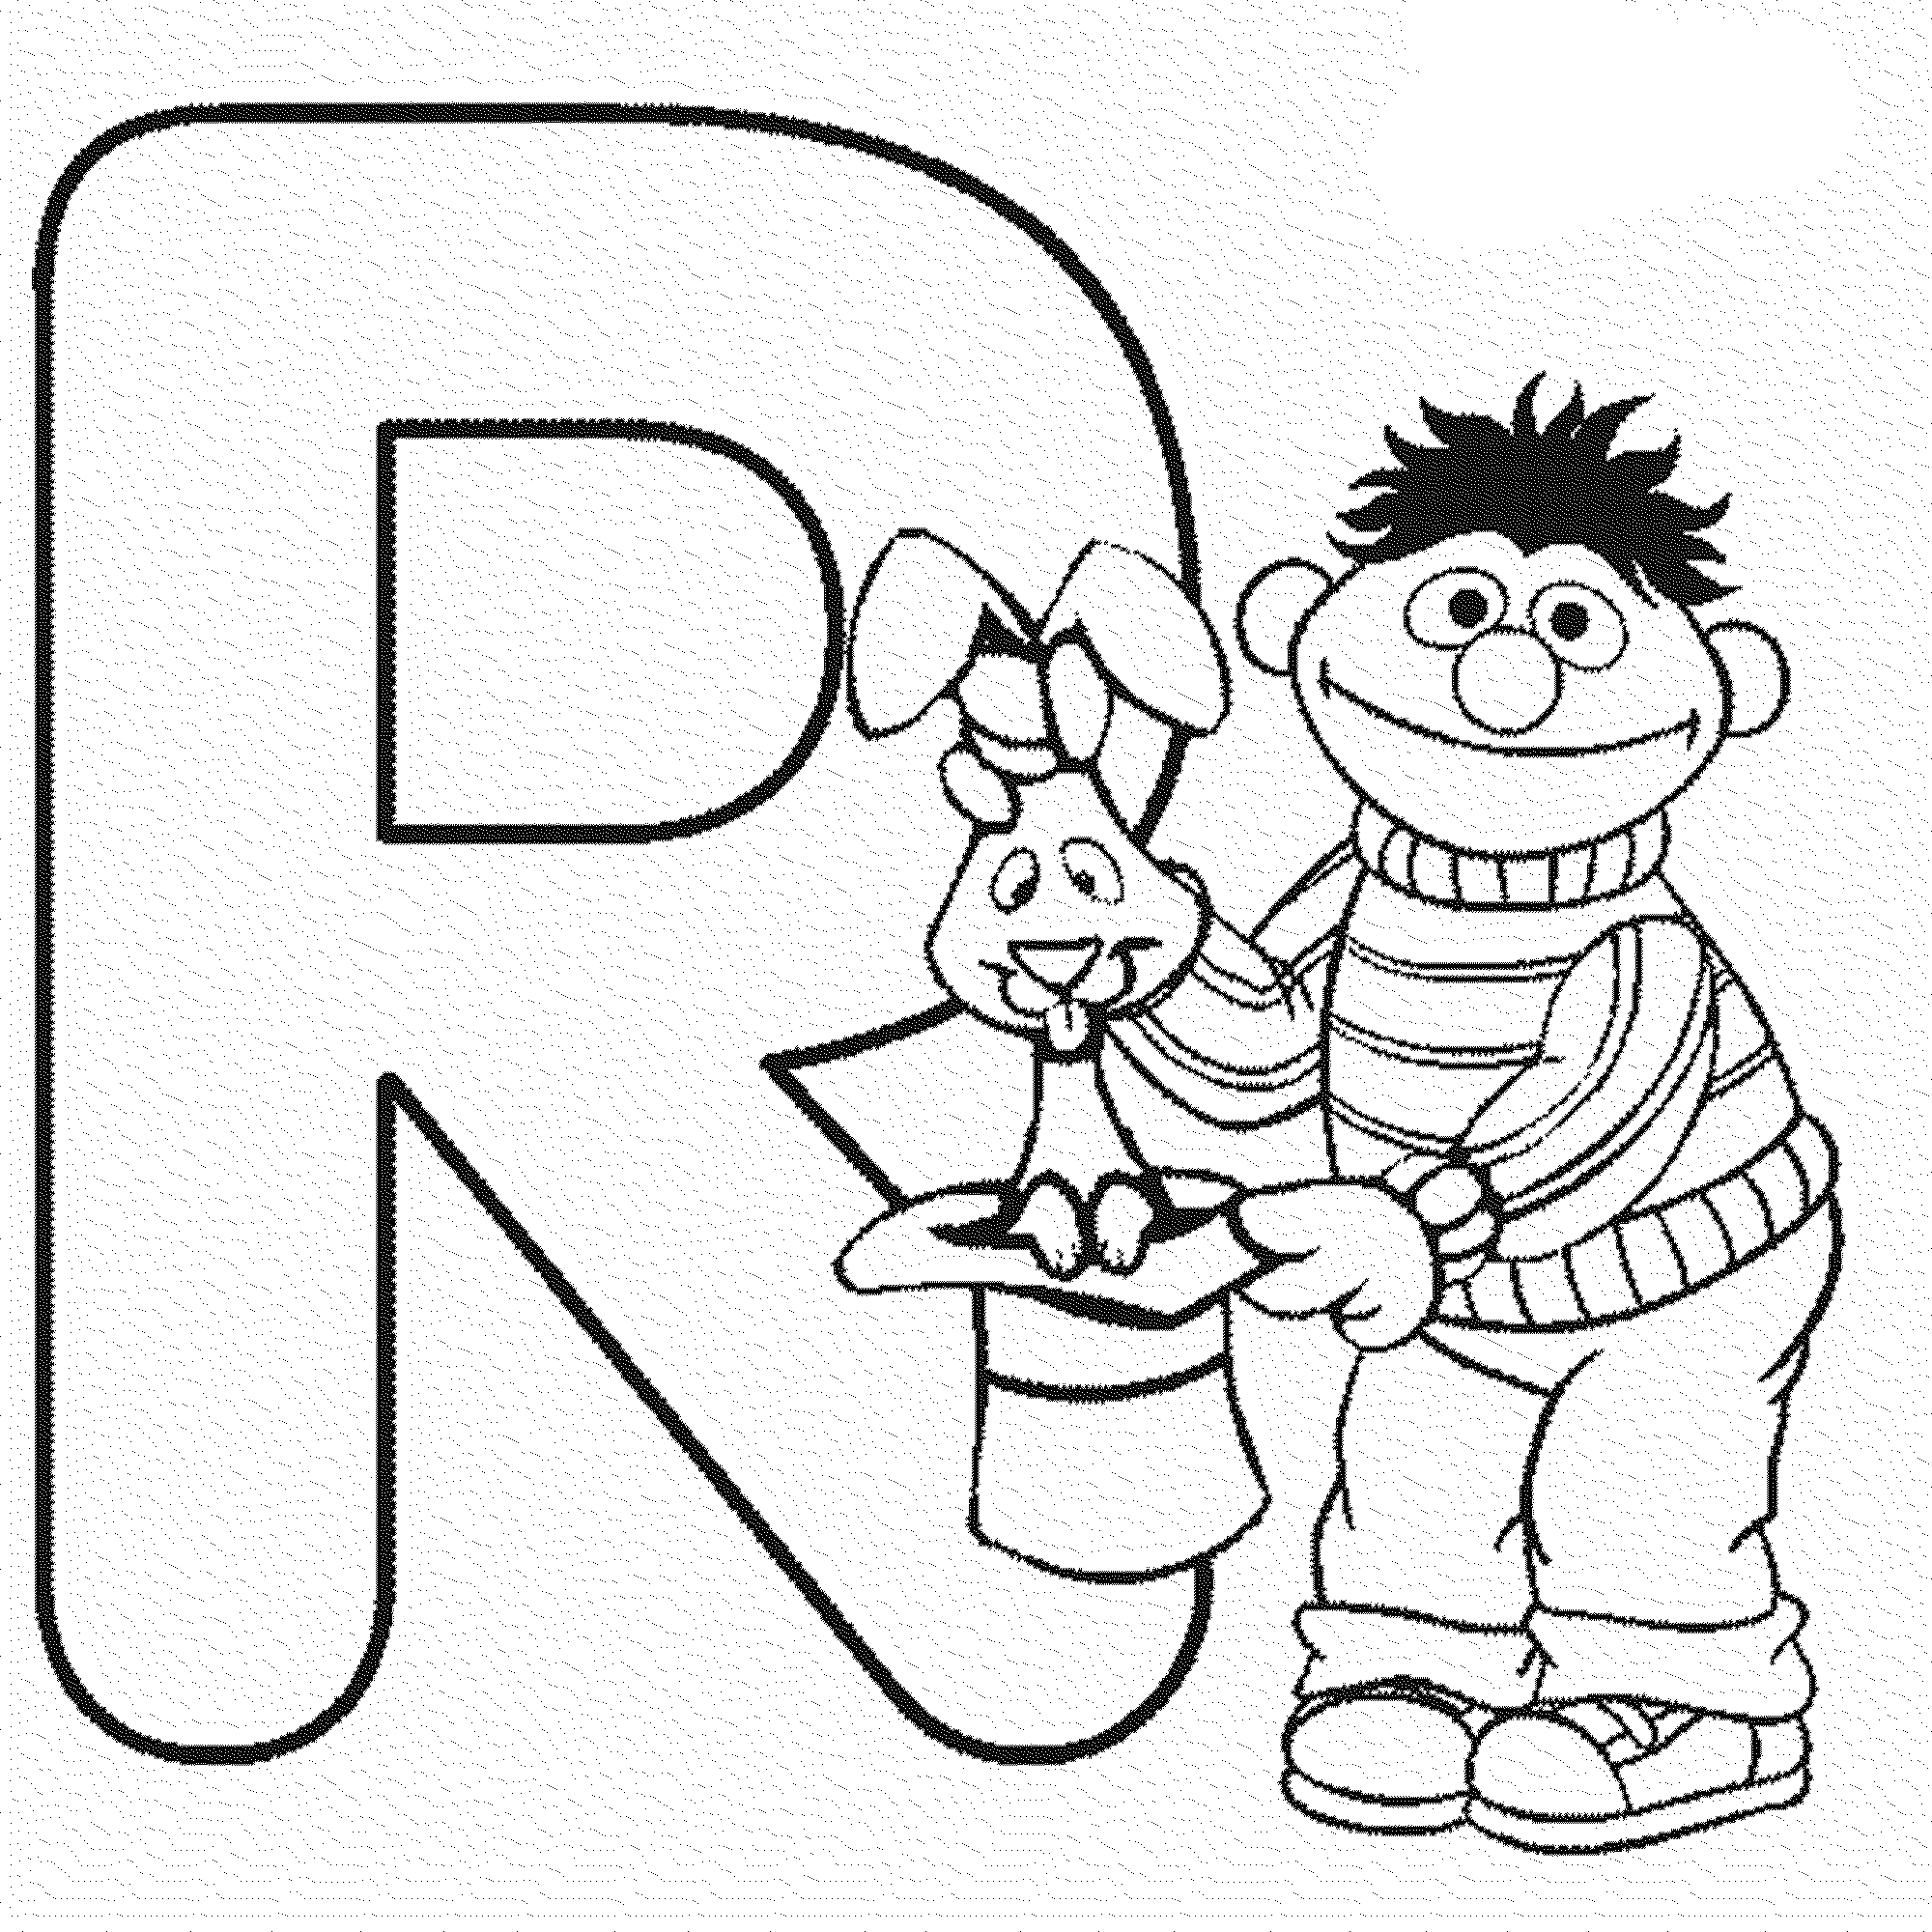 Free Elmo Alphabet Coloring Pages Coloring Pages